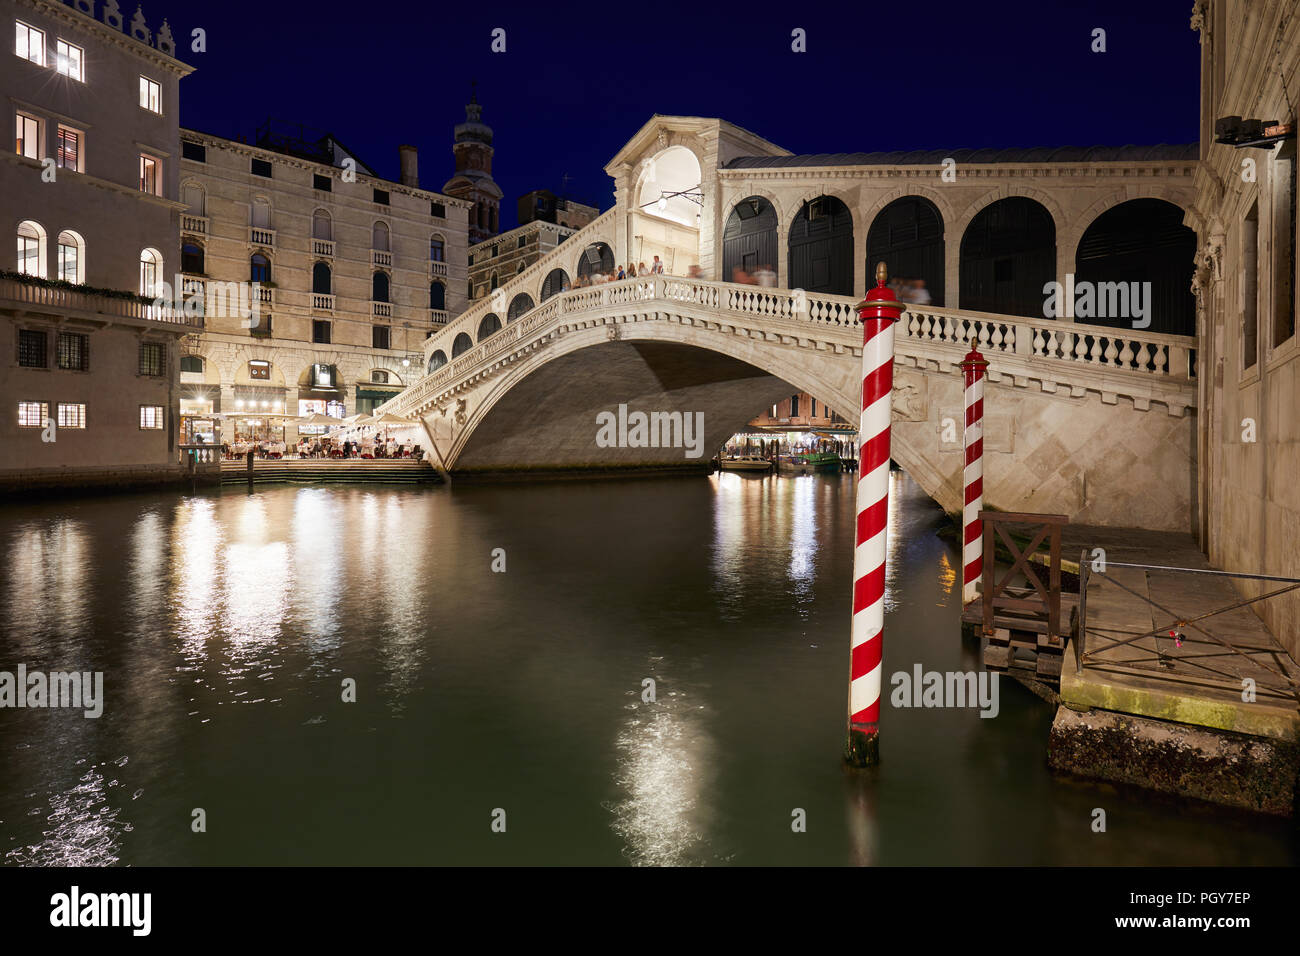 Rialto Bridge and Grand Canal with people and tourists at night in Venice, Italy - Stock Image